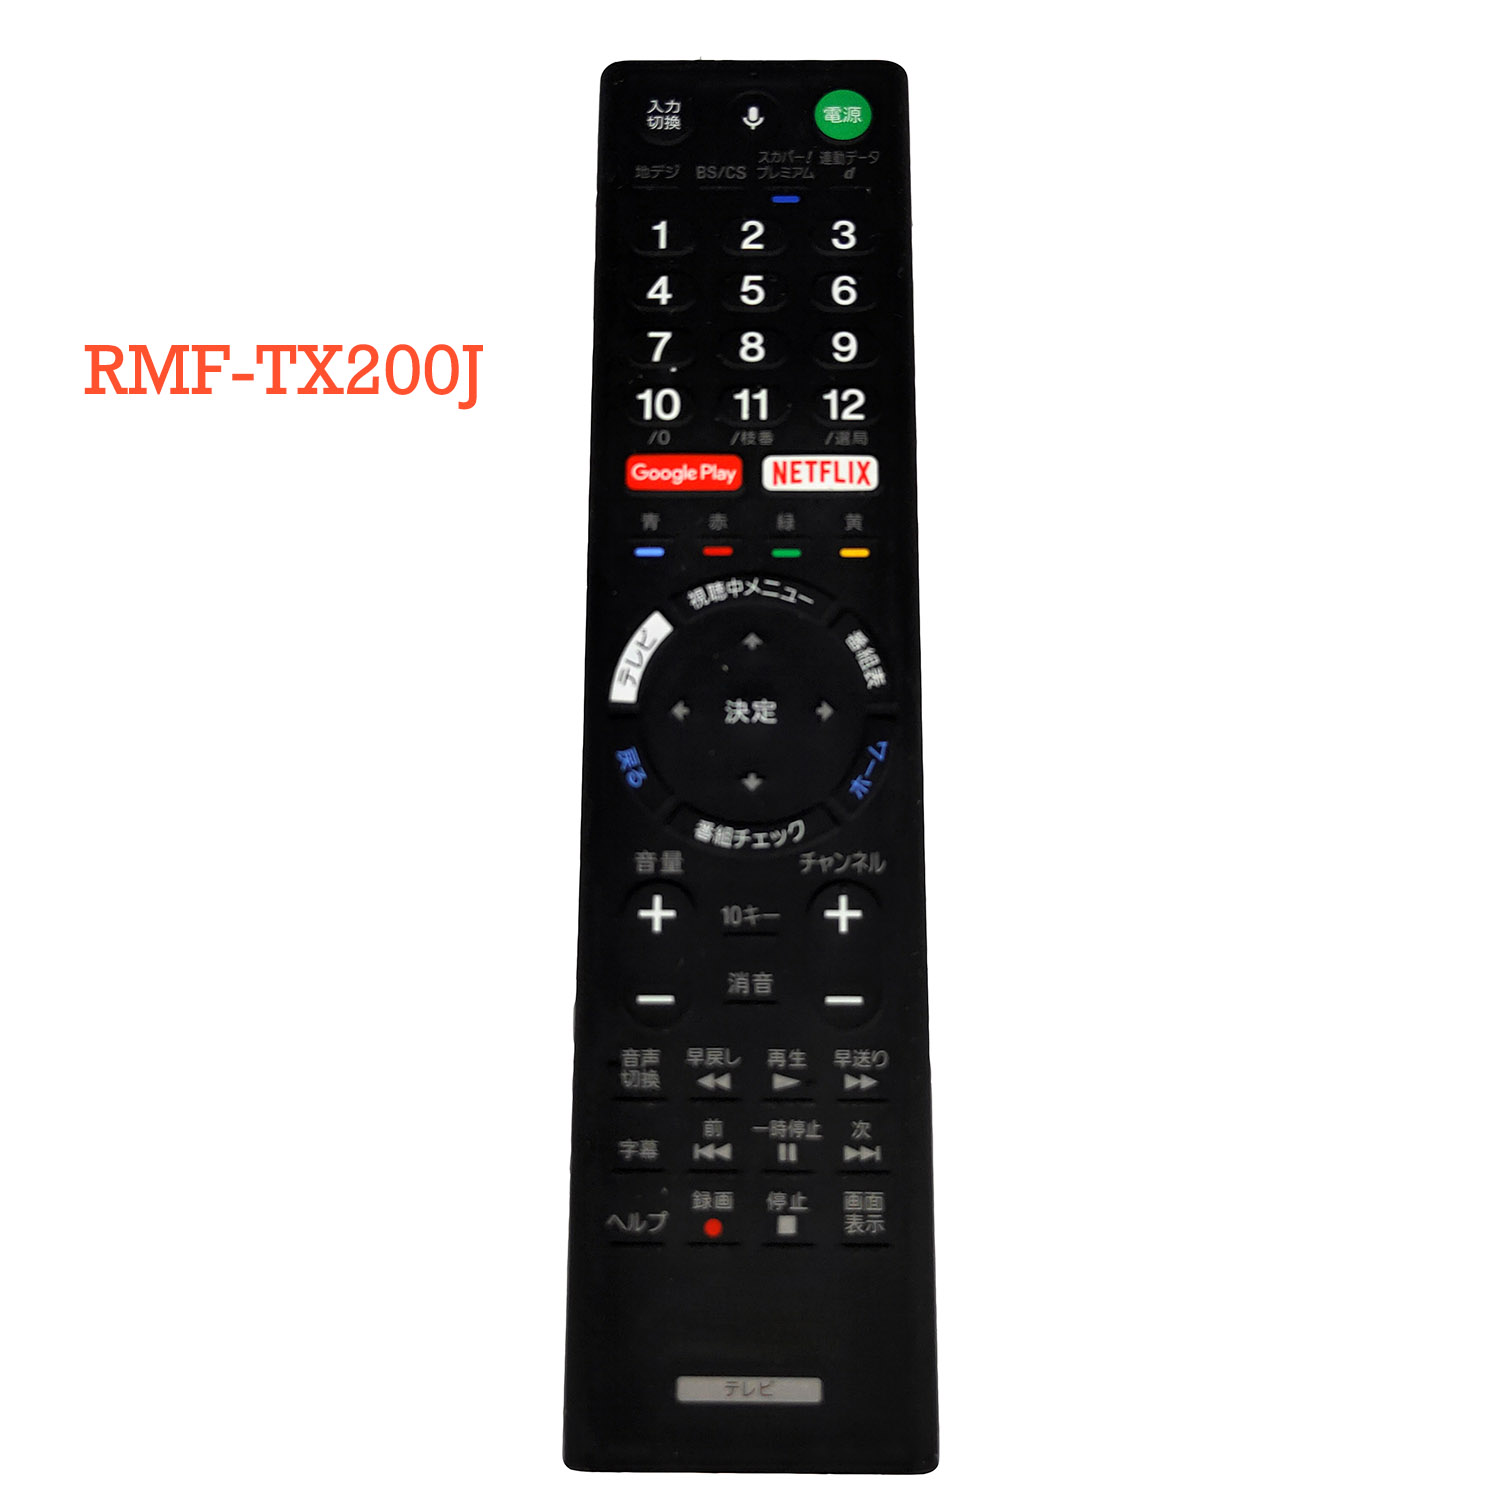 Used Original for SONY TV Remote control RMF-TX200J for KJ-65X9350D KJ-55X9350D KJ-65X9300D KJ-55X9300D KJ-65X8500D Japanese image